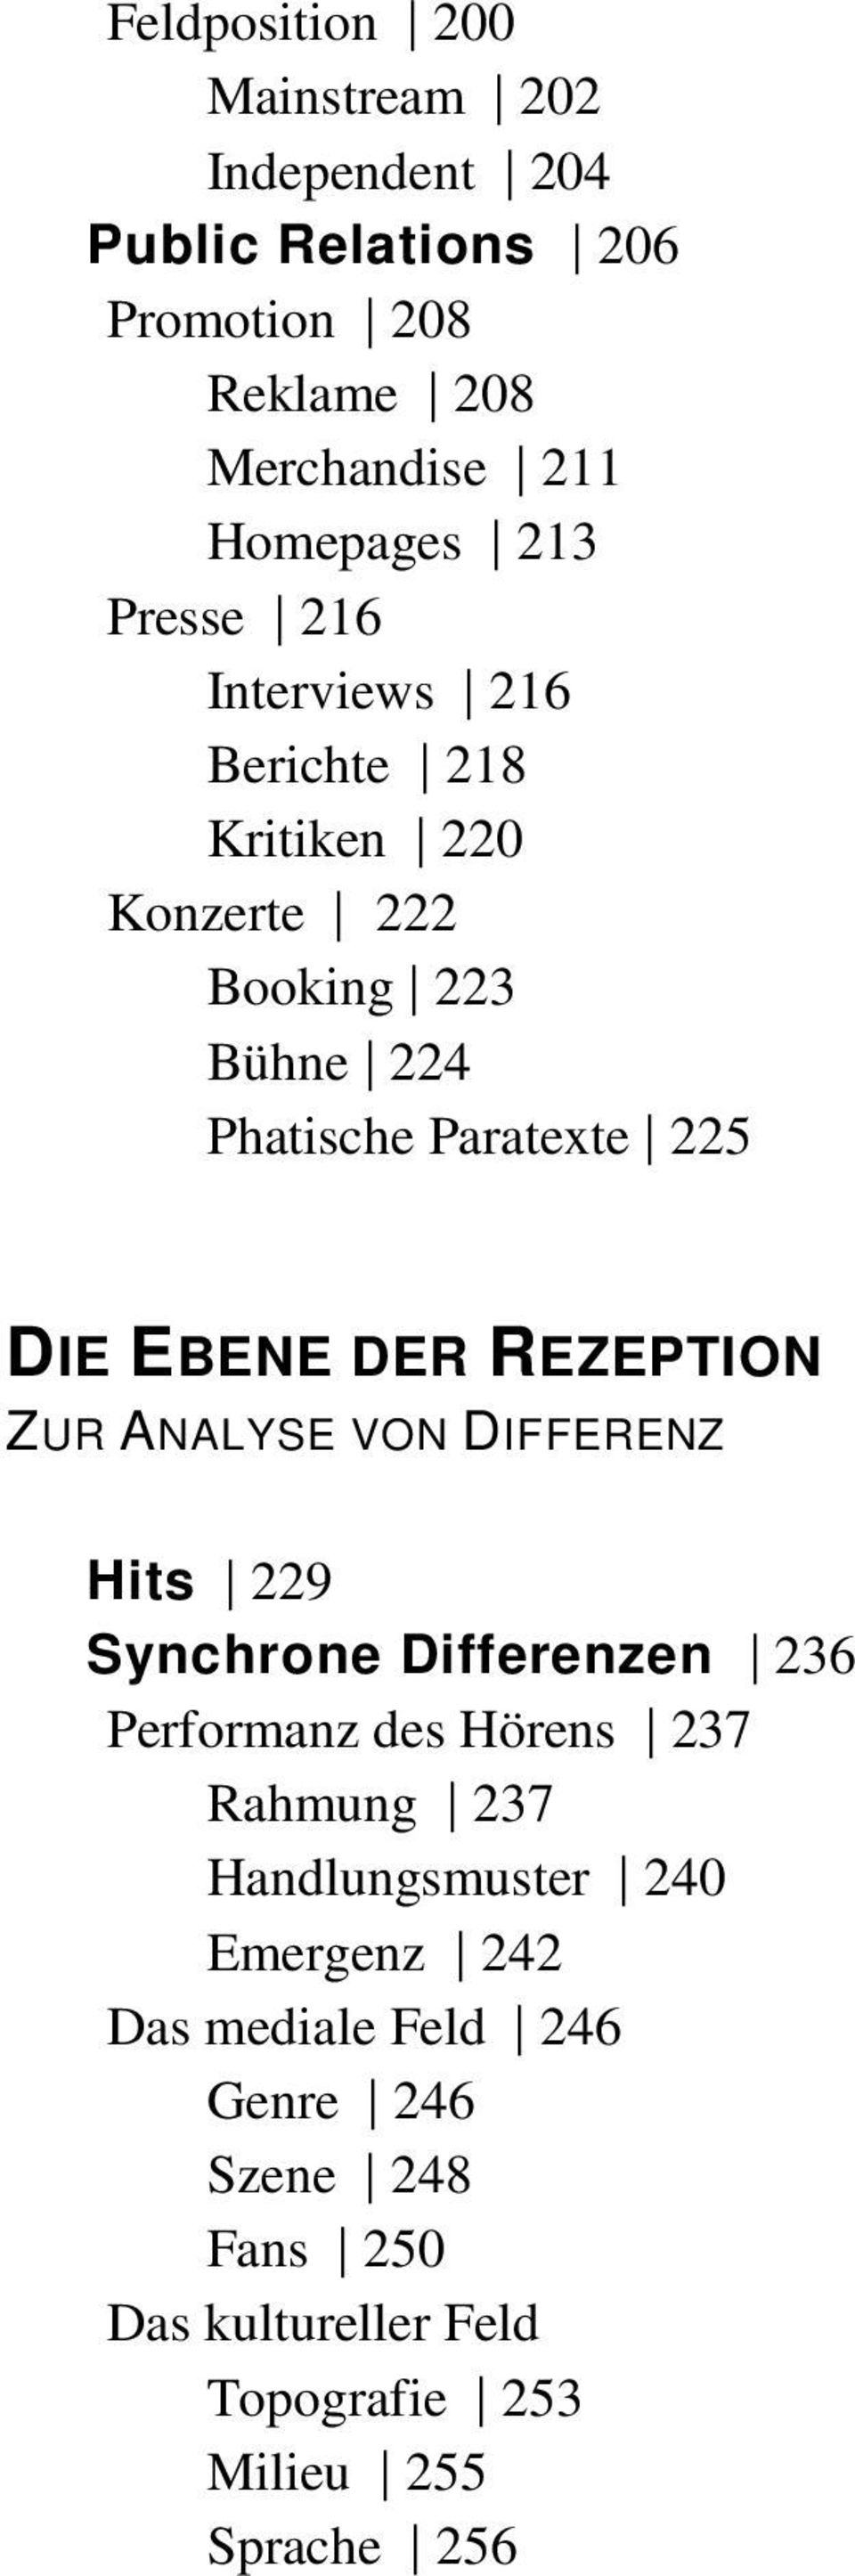 REZEPTION ZUR ANALYSE VON DIFFERENZ Hits 229 Synchrone Differenzen 236 Performanz des Hörens 237 Rahmung 237 Handlungsmuster